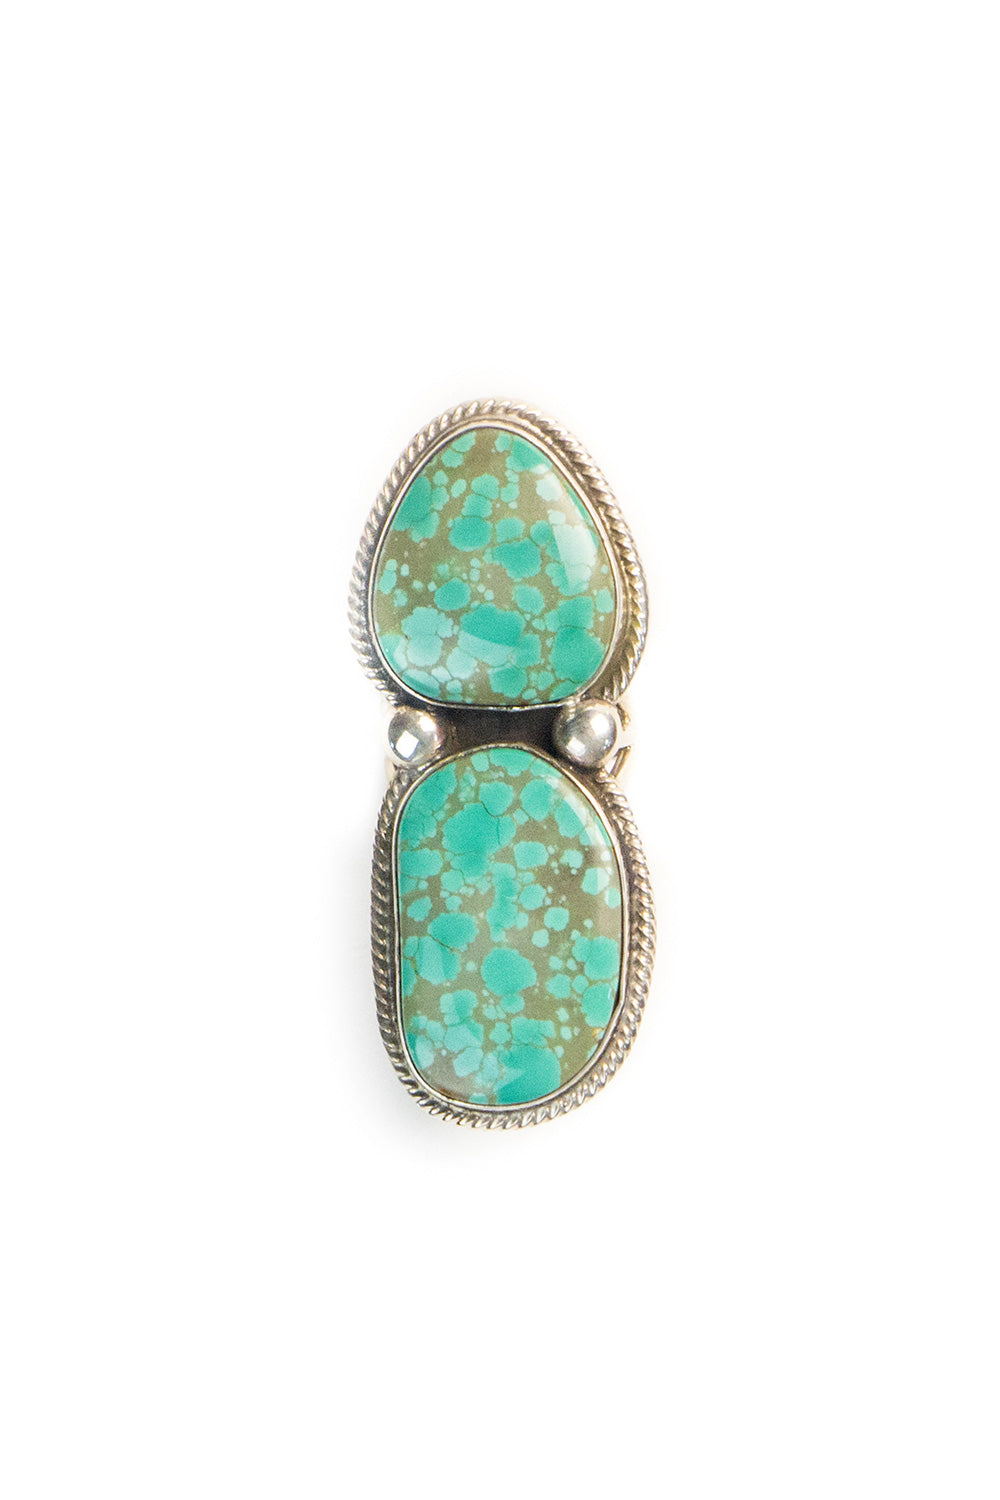 Ring, Turquoise, Double Stone, 542